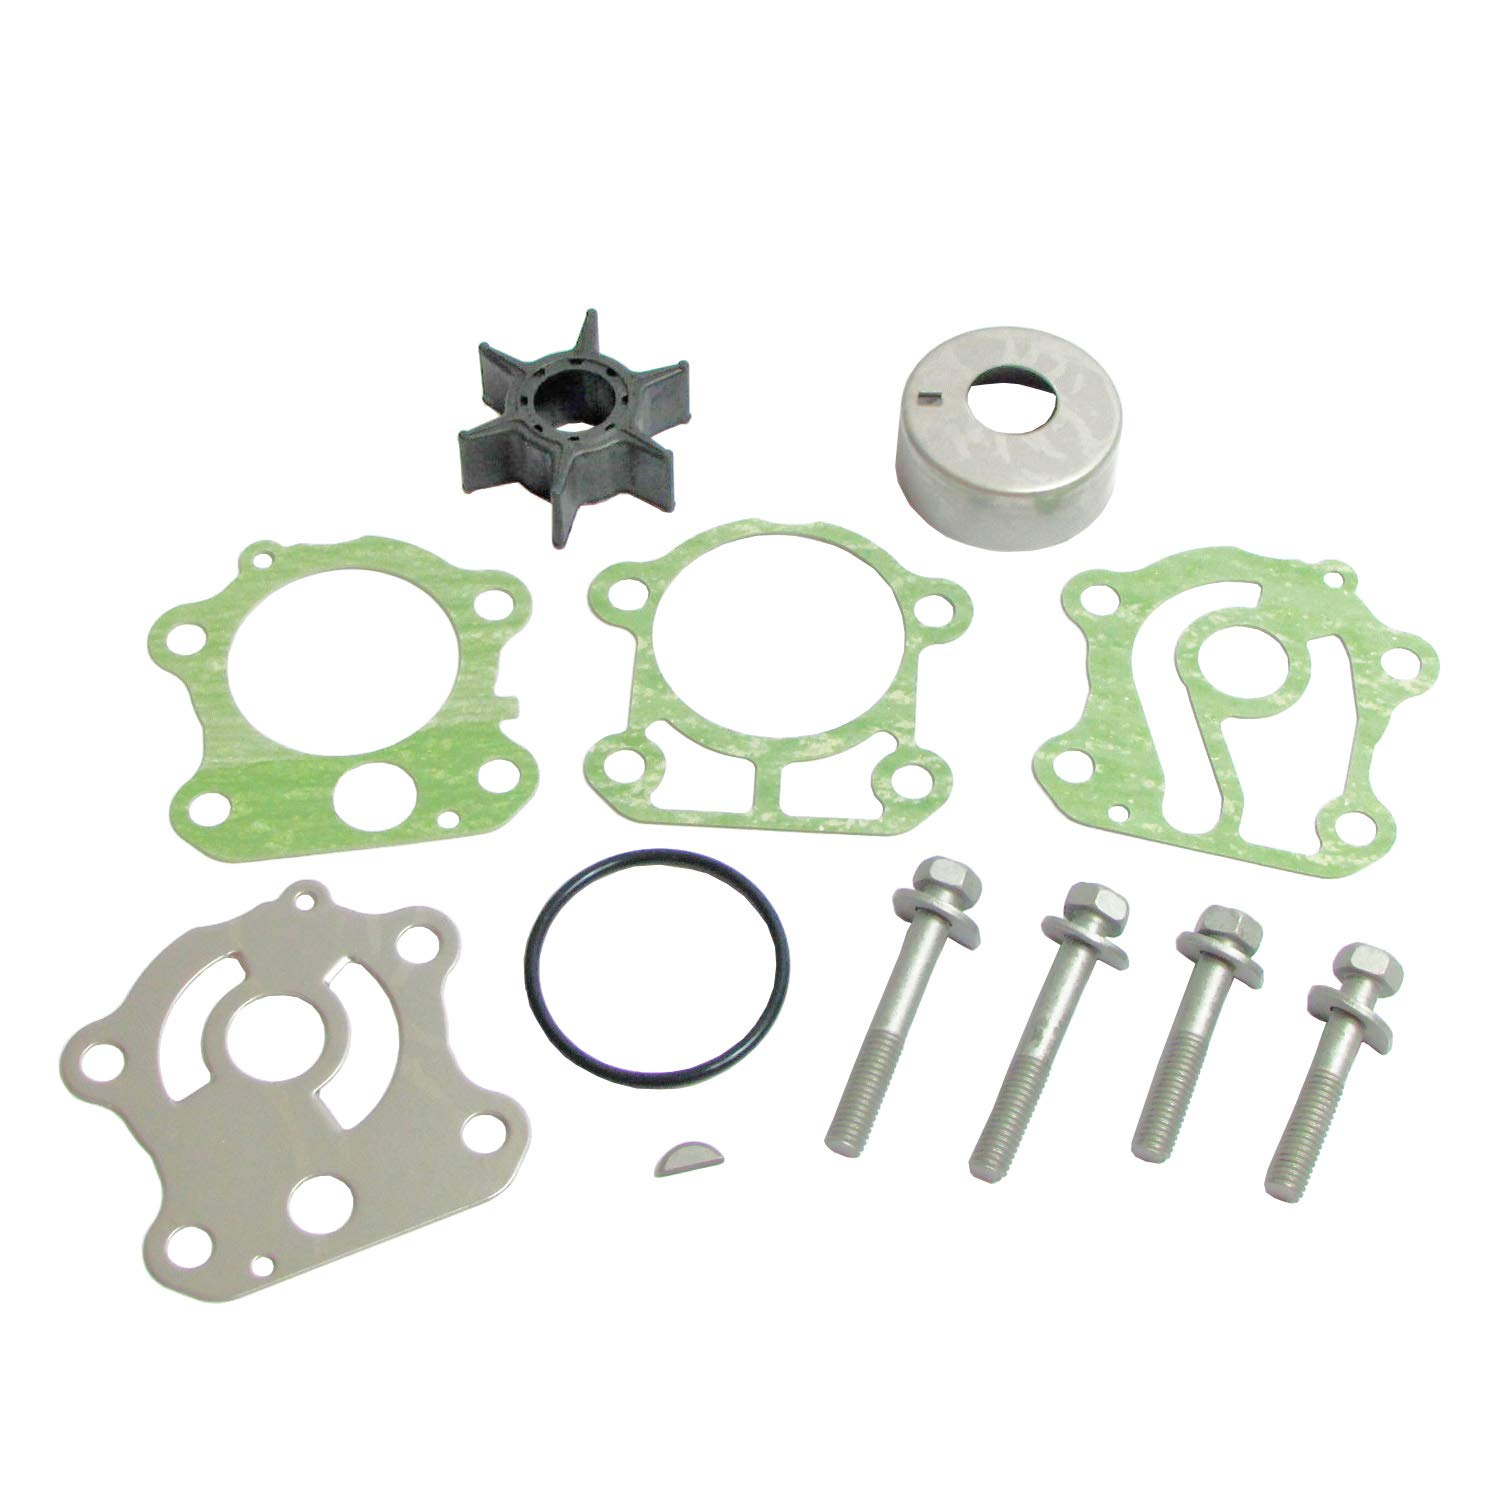 OEM Yamaha Outboard 97-2003 60-70 Water Pump Impeller Repair Kit 6H3-W0078-02-00